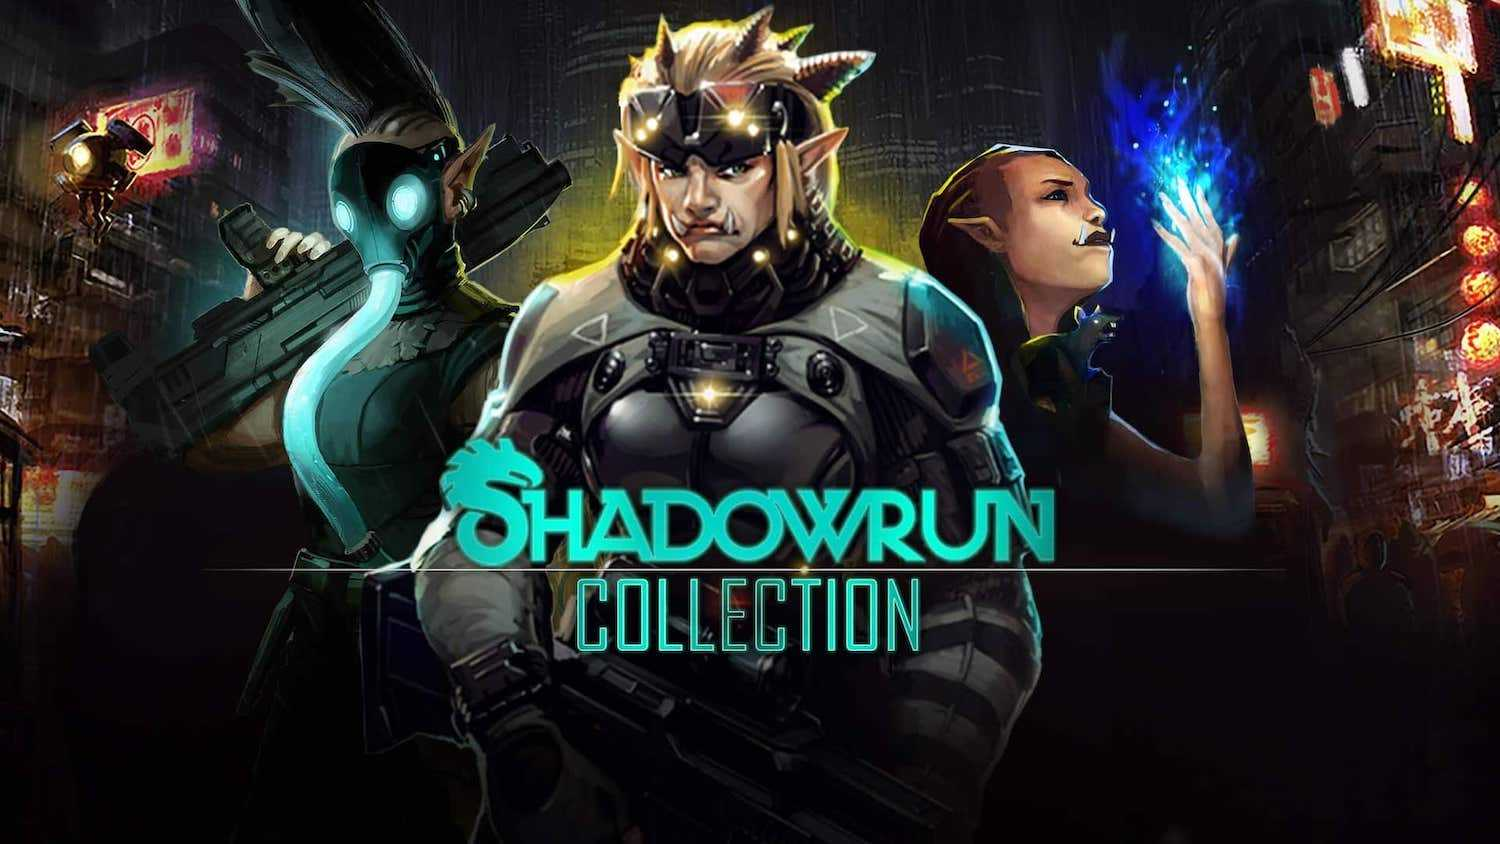 Capa do jogo ShadowRun Collection